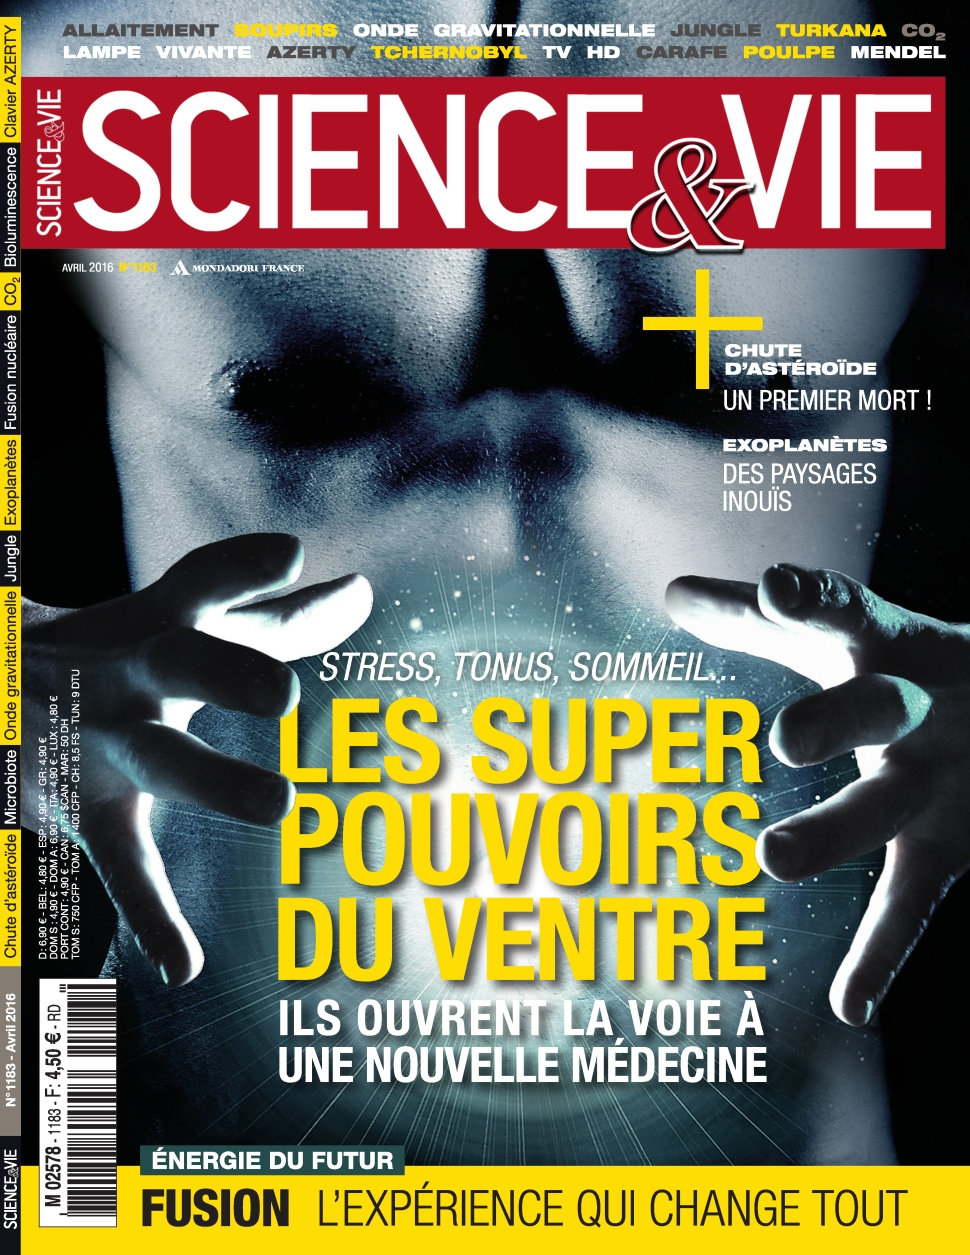 Science & Vie N°1183 - Avril 2016